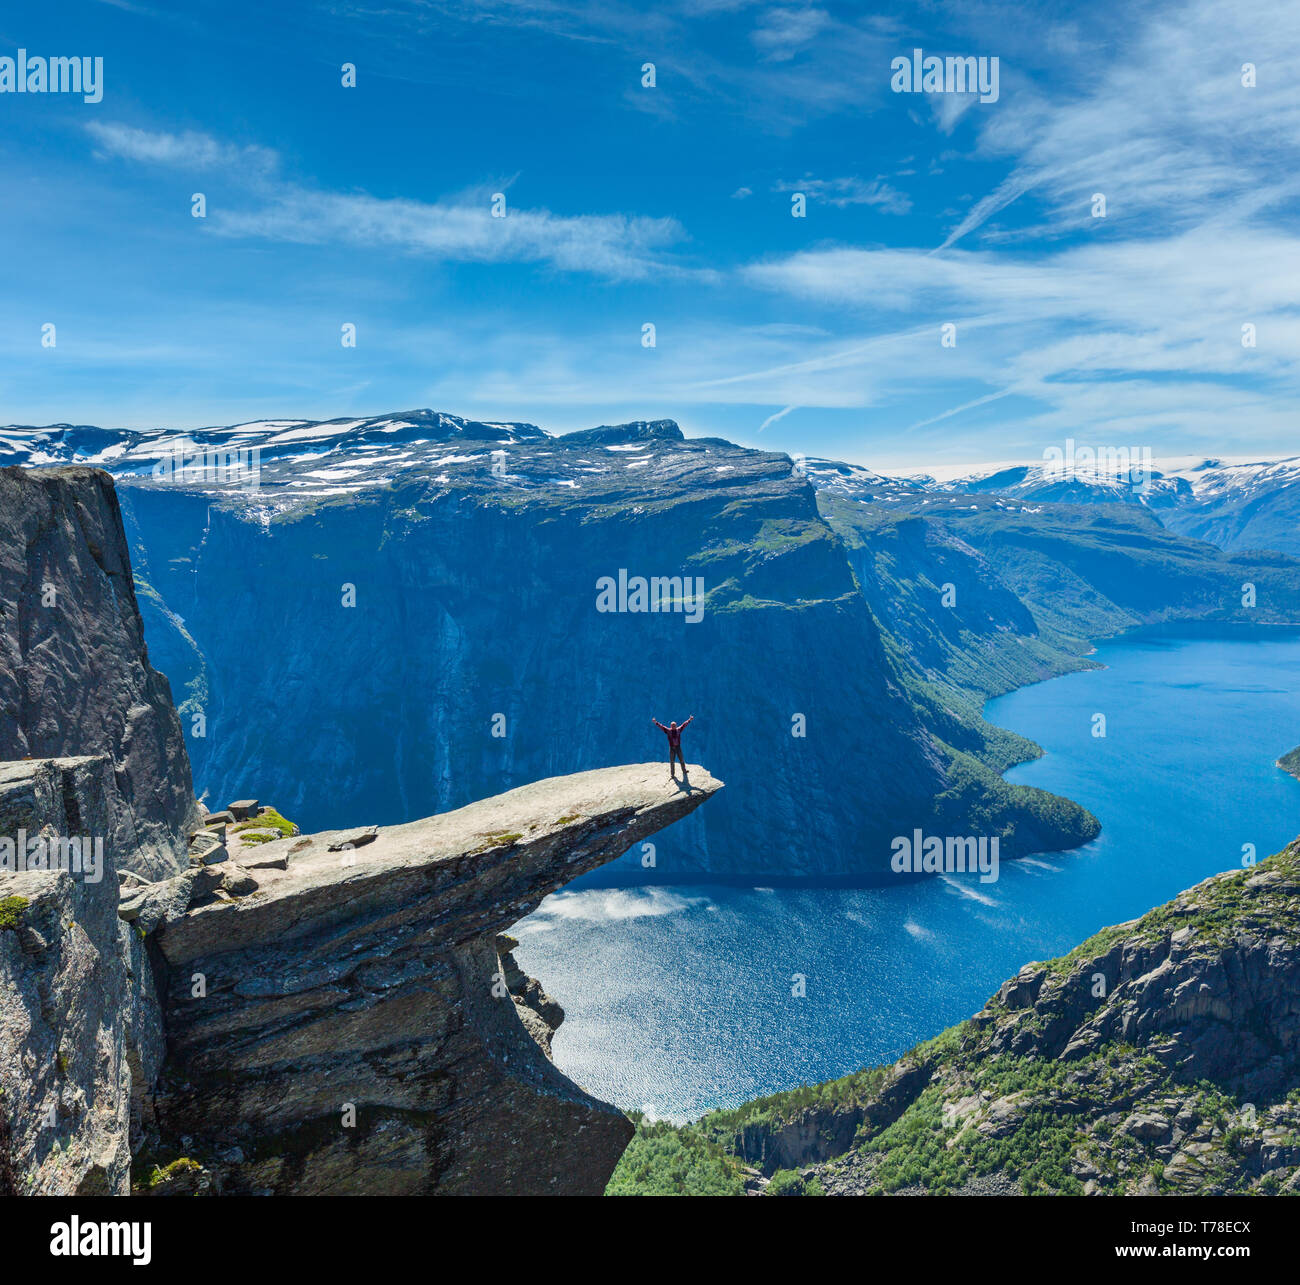 The summer view of Trolltunga (famous The Troll's tongue Norvegian destination) and Ringedalsvatnet lake in Odda, Roldal, Norway. Man tourist on rock. - Stock Image